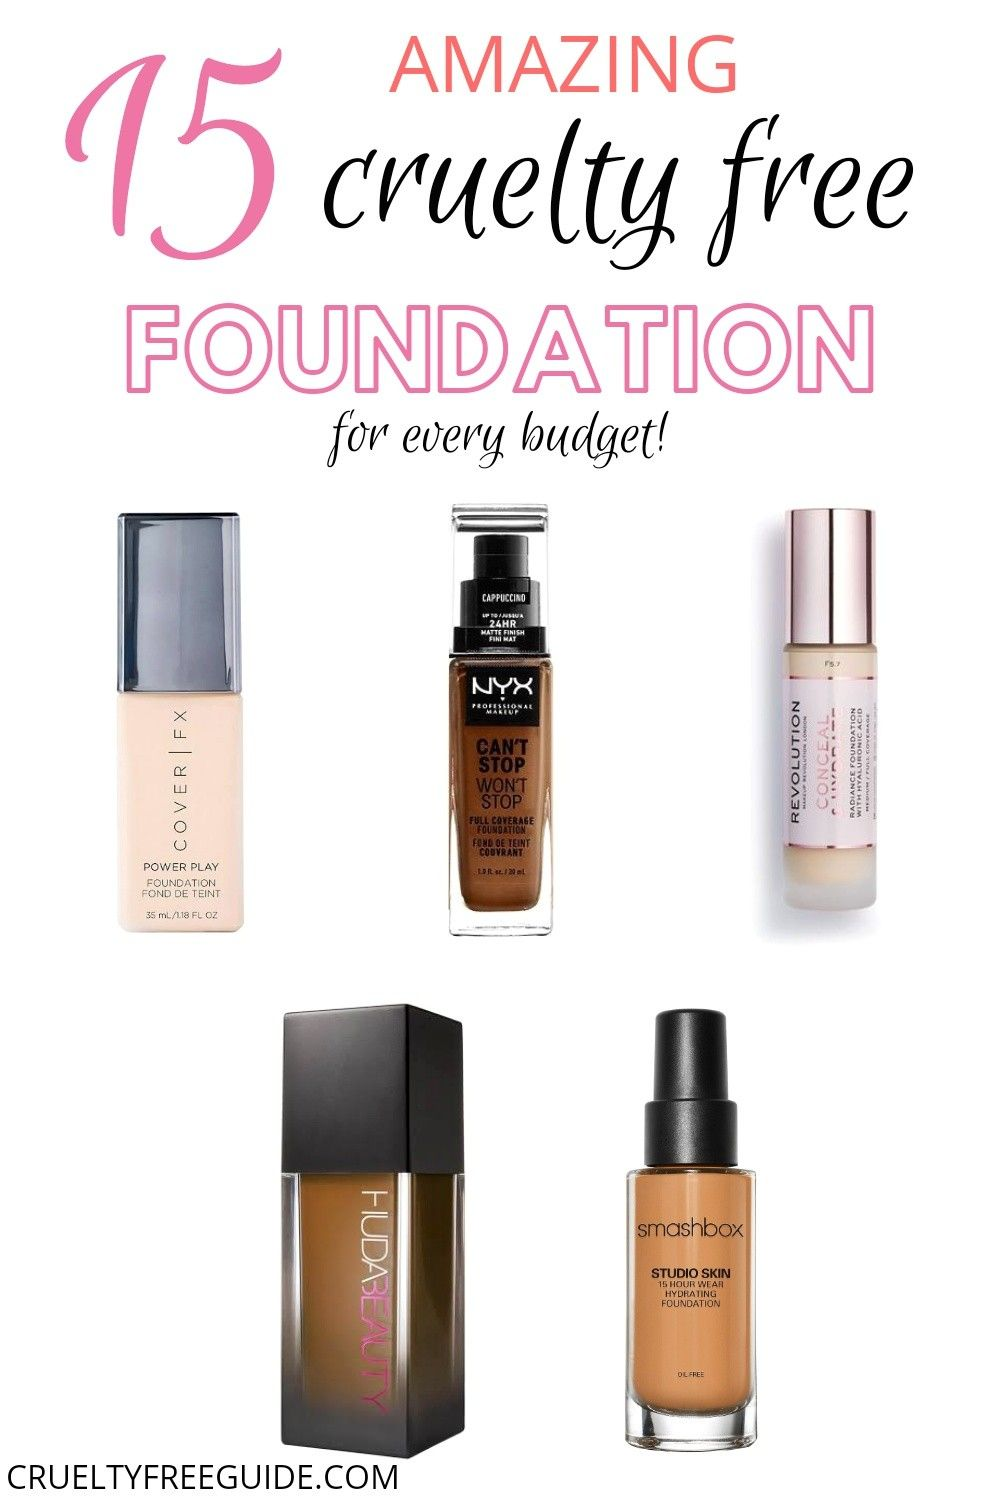 13 Amazing Drugstore Foundations That Are Cruelty Free 2020 In 2020 Drugstore Foundation Smashbox Studio Skin Foundation Best Drugstore Foundation